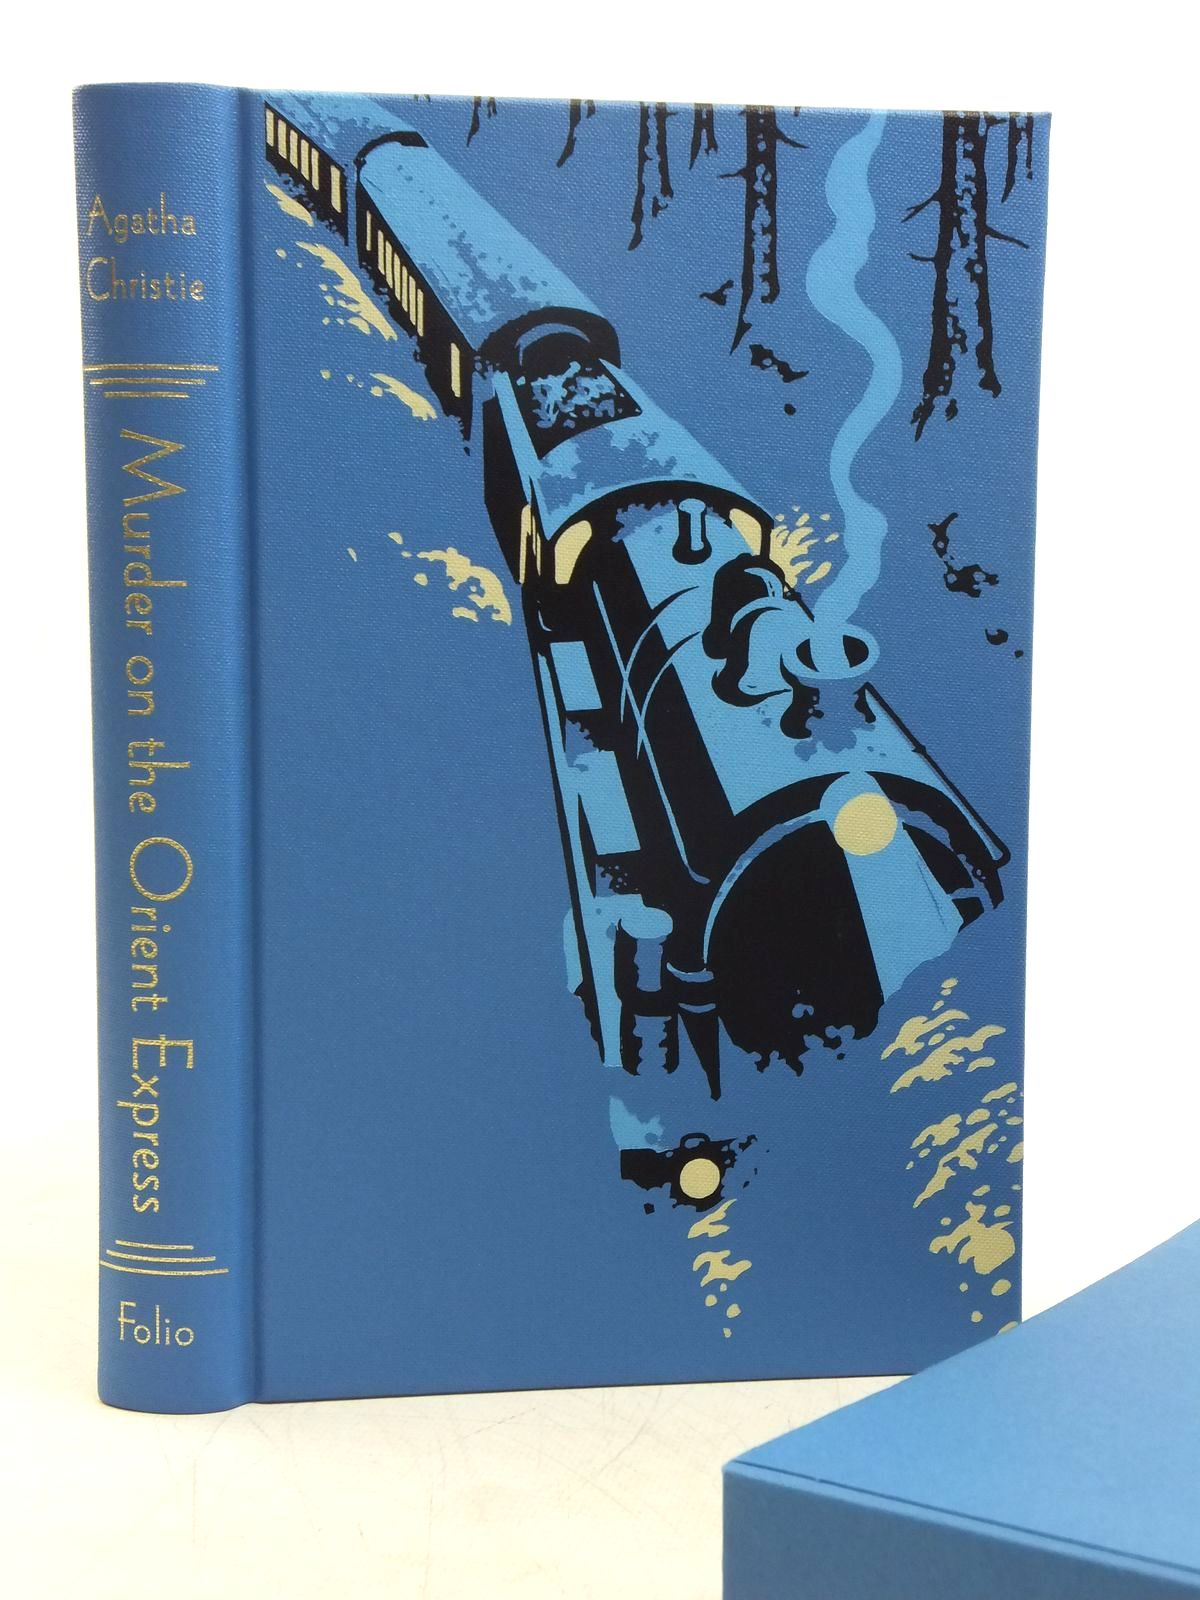 Photo of MURDER ON THE ORIENT EXPRESS written by Christie, Agatha illustrated by Davidson, Andrew published by Folio Society (STOCK CODE: 1607668)  for sale by Stella & Rose's Books